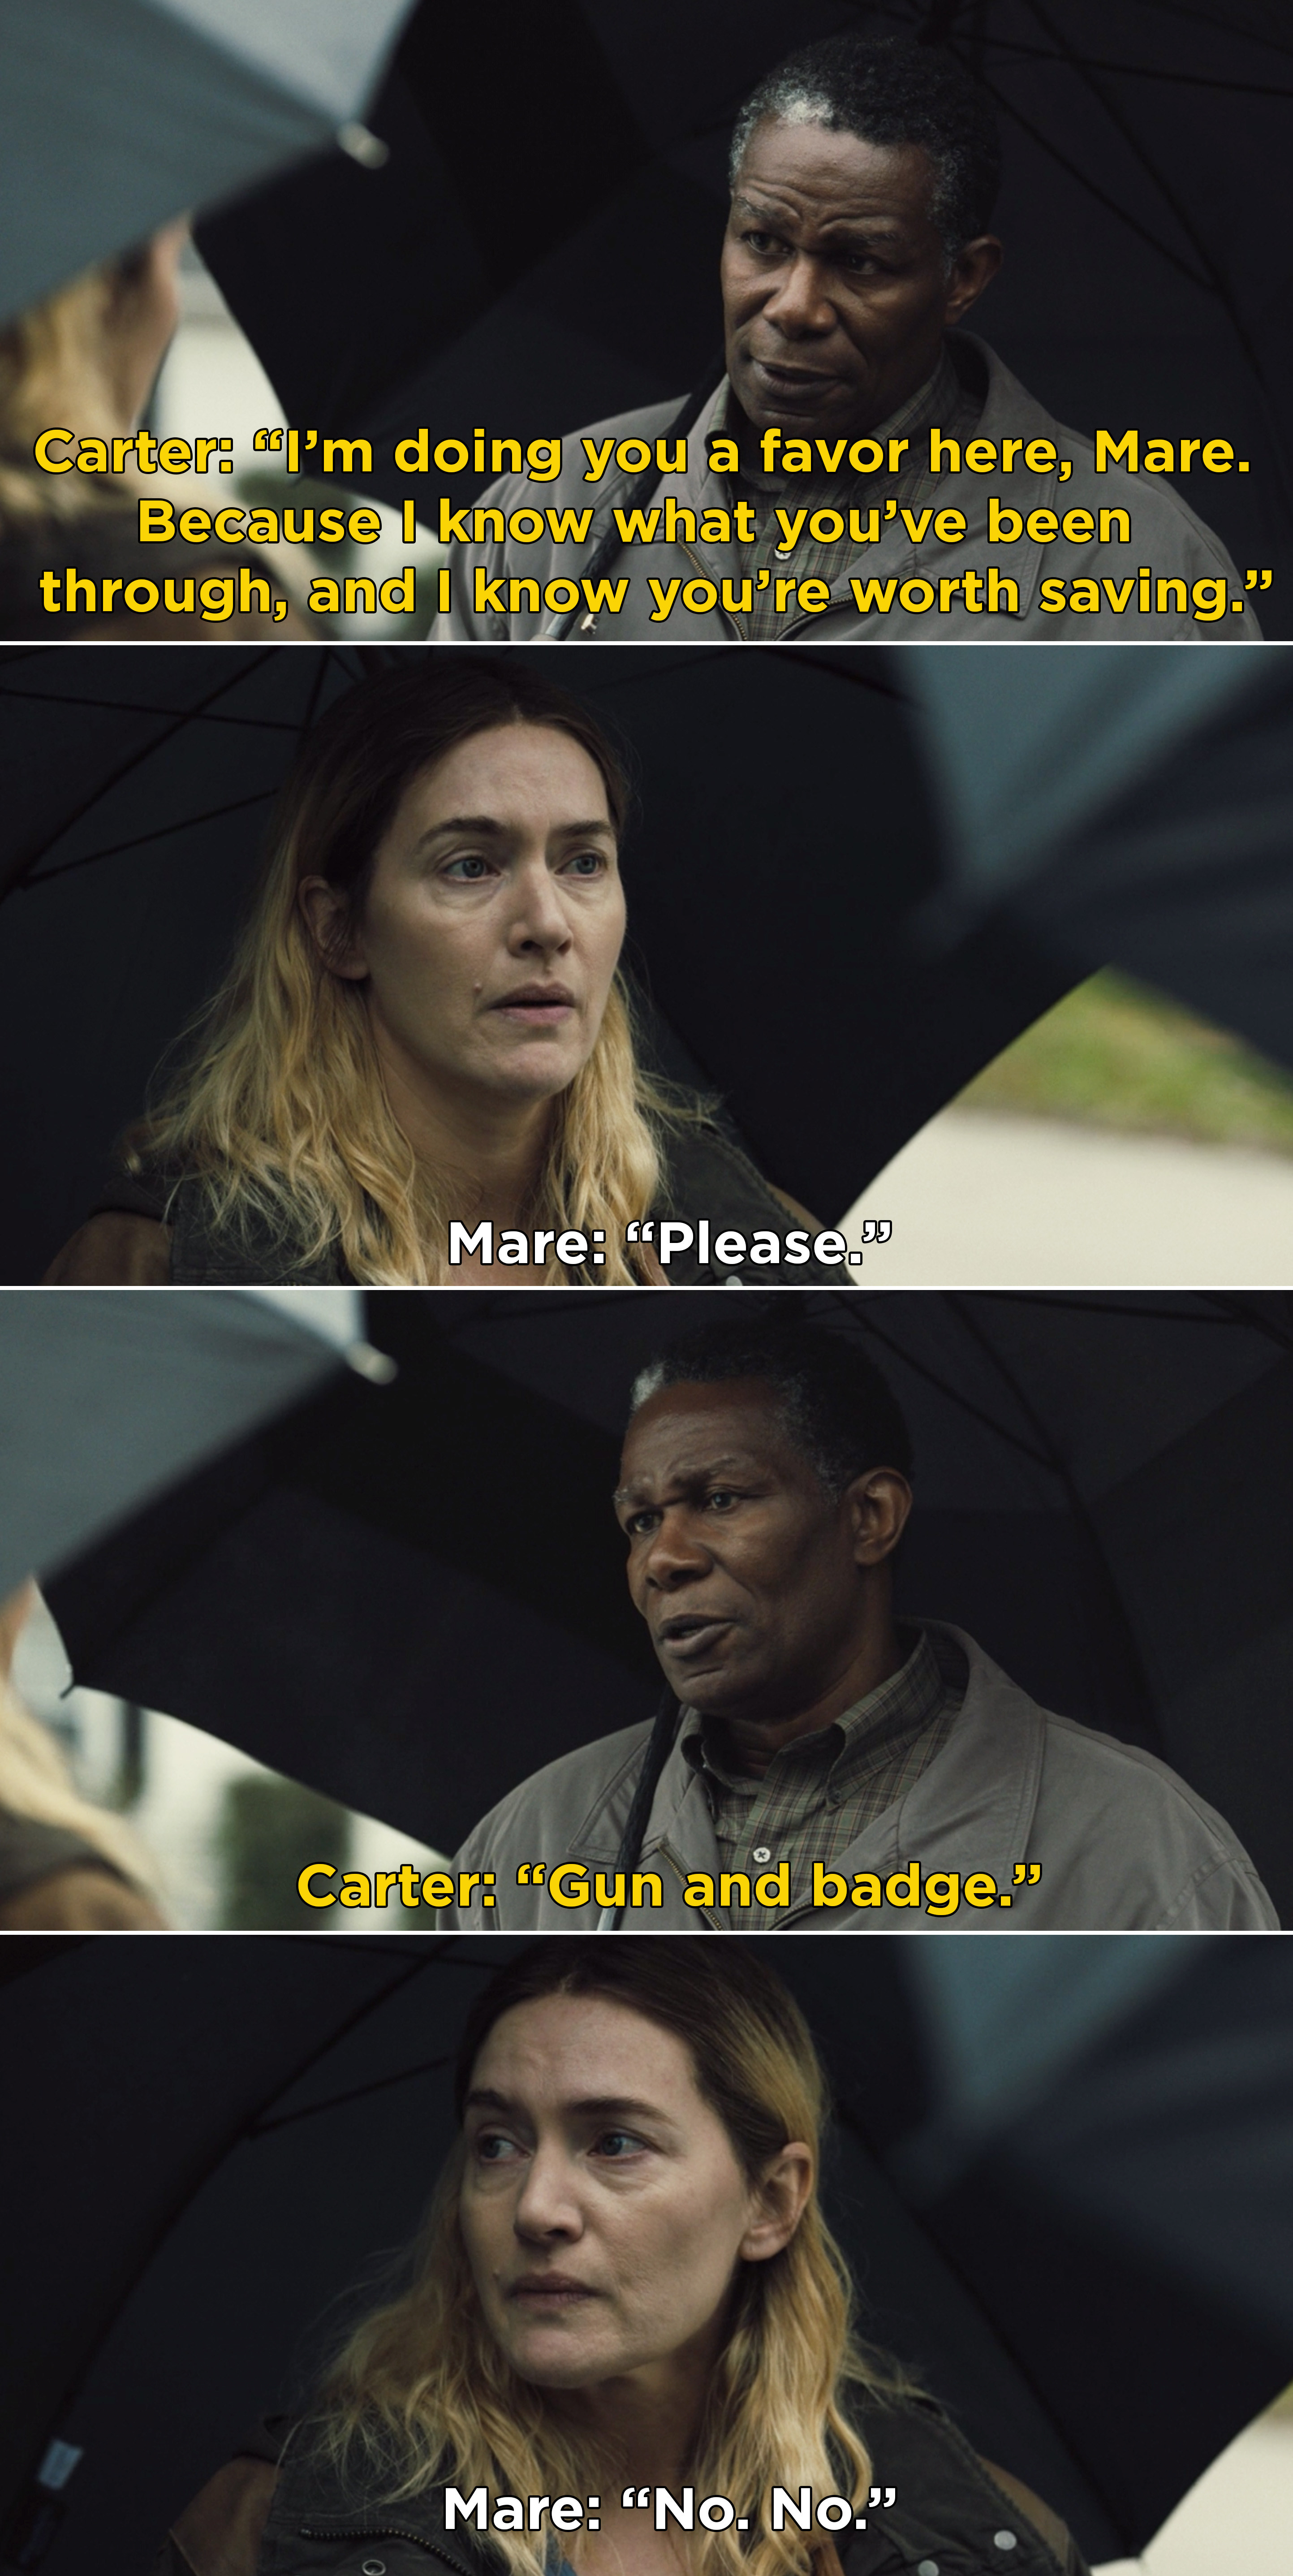 Carter telling Mare that she is worth saving